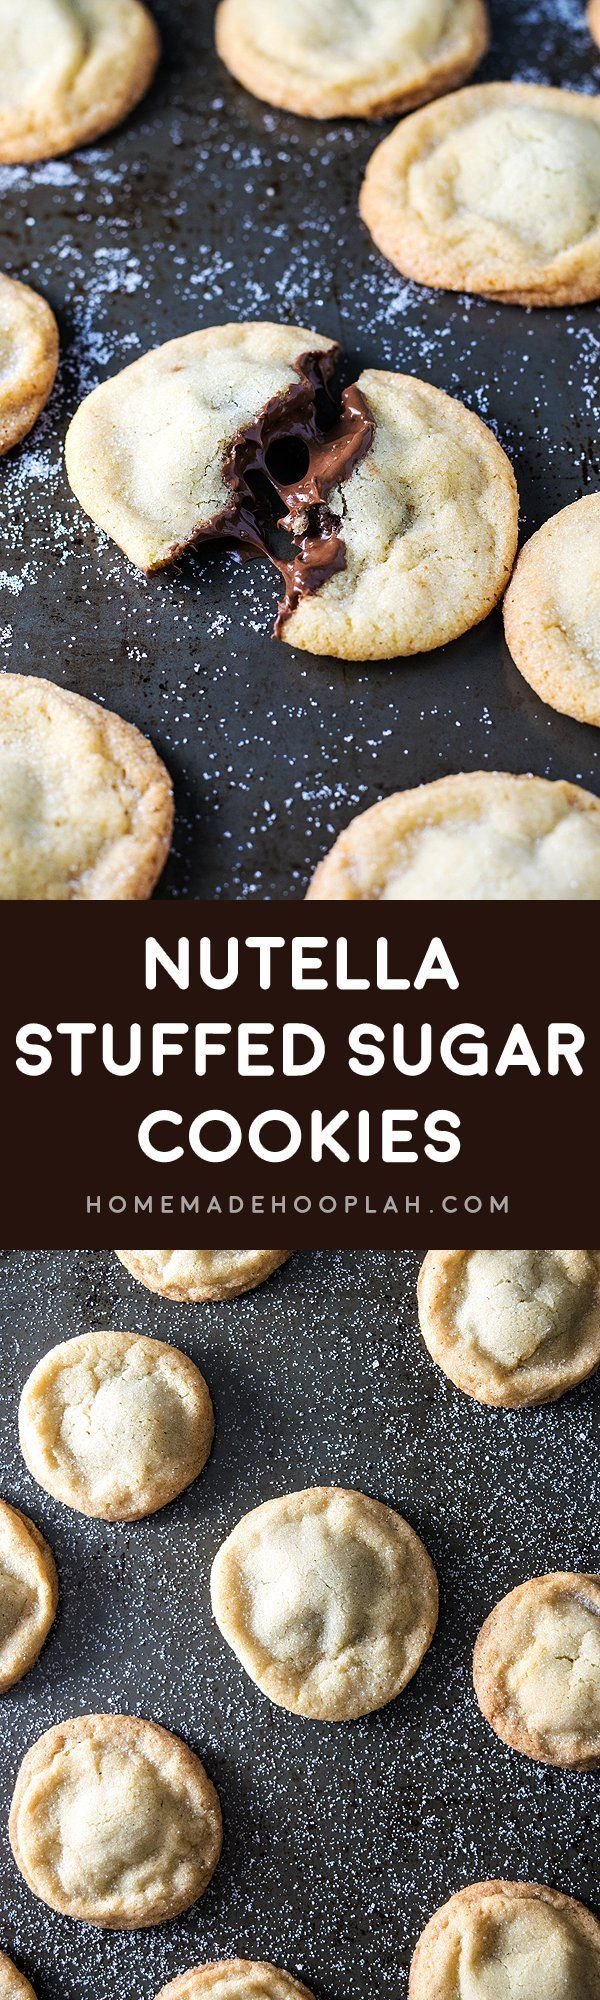 Nutella Stuffed Sugar Cookies! Old fashioned soft and chewy sugar cookies stuffed with creamy Nutella. It's as delicious as it sounds! | HomemadeHooplah.com